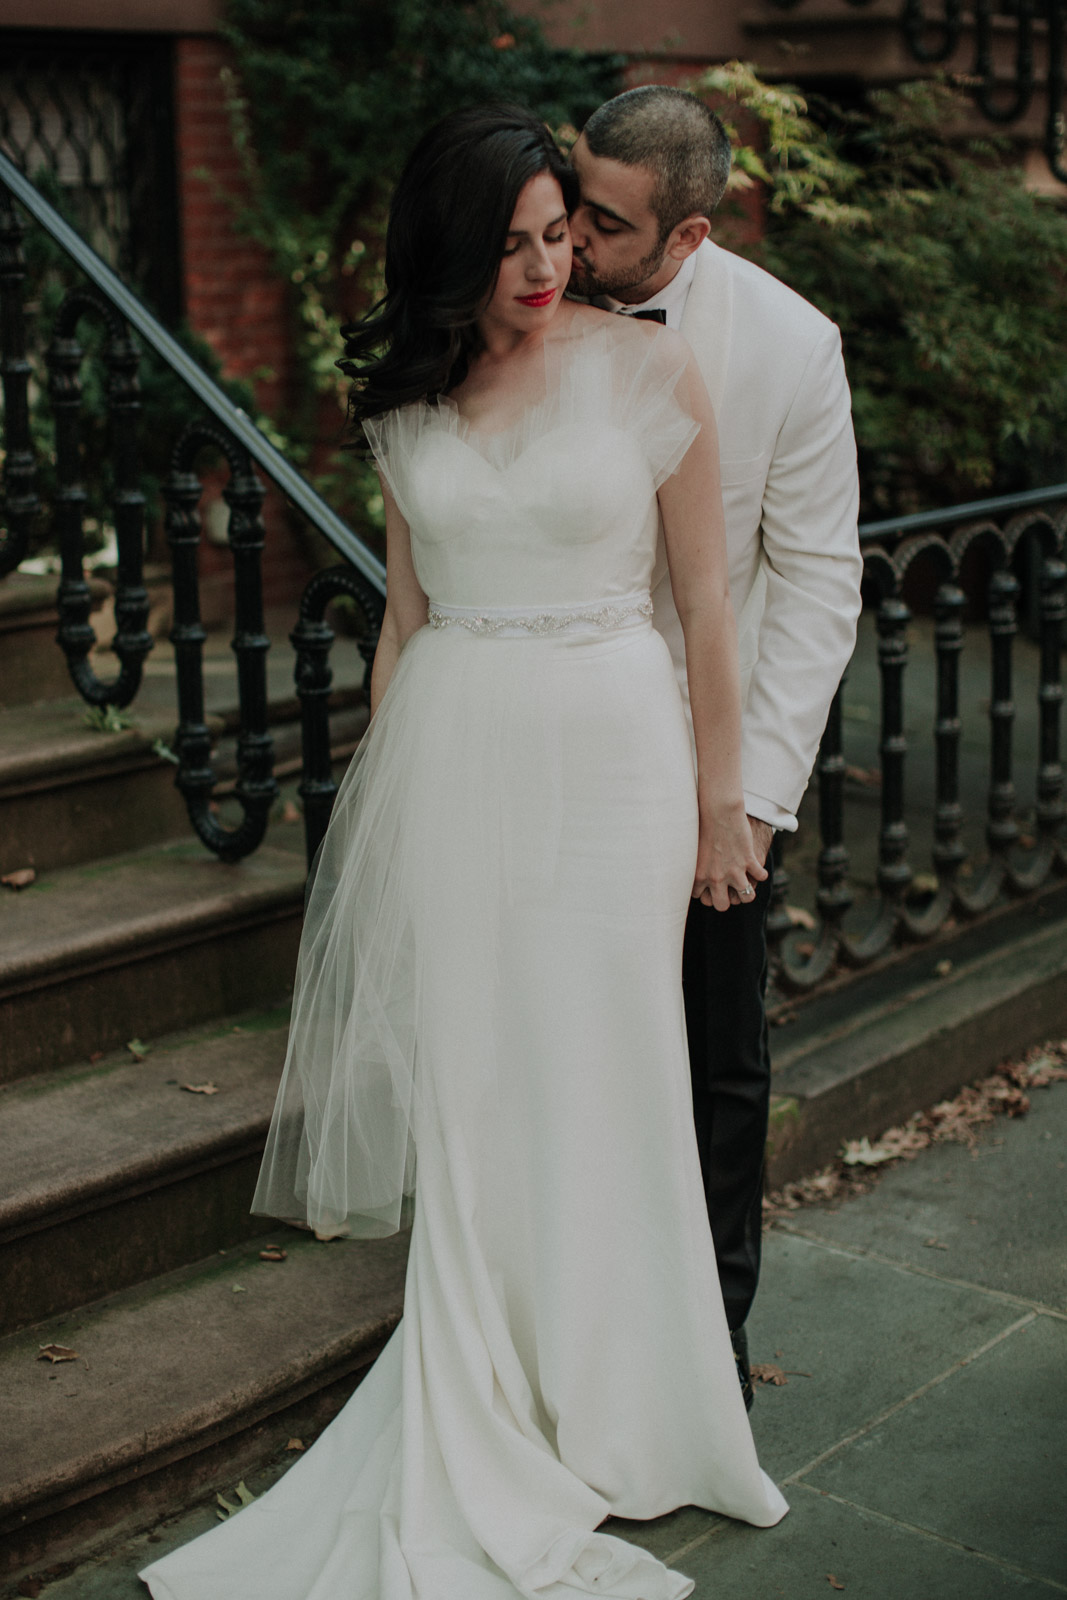 Carol Hannah Bridal Custom Gown brooklyn frankies-457-1-6.jpg